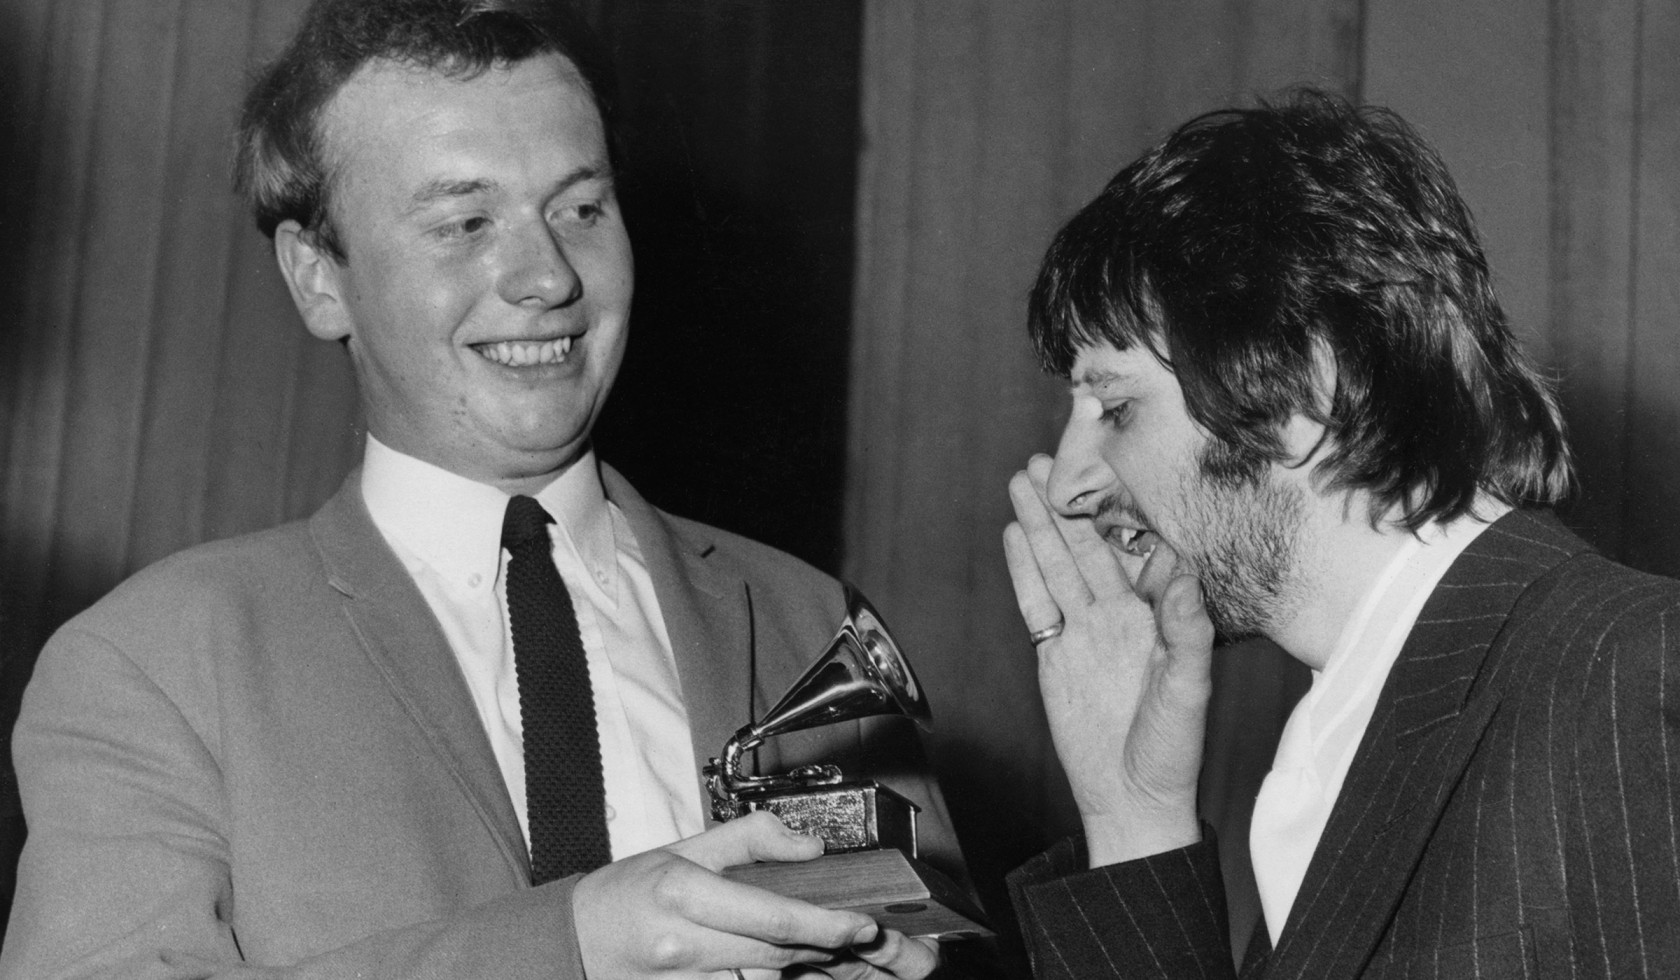 Remembering Pioneering Studio Engineer Geoff Emerick